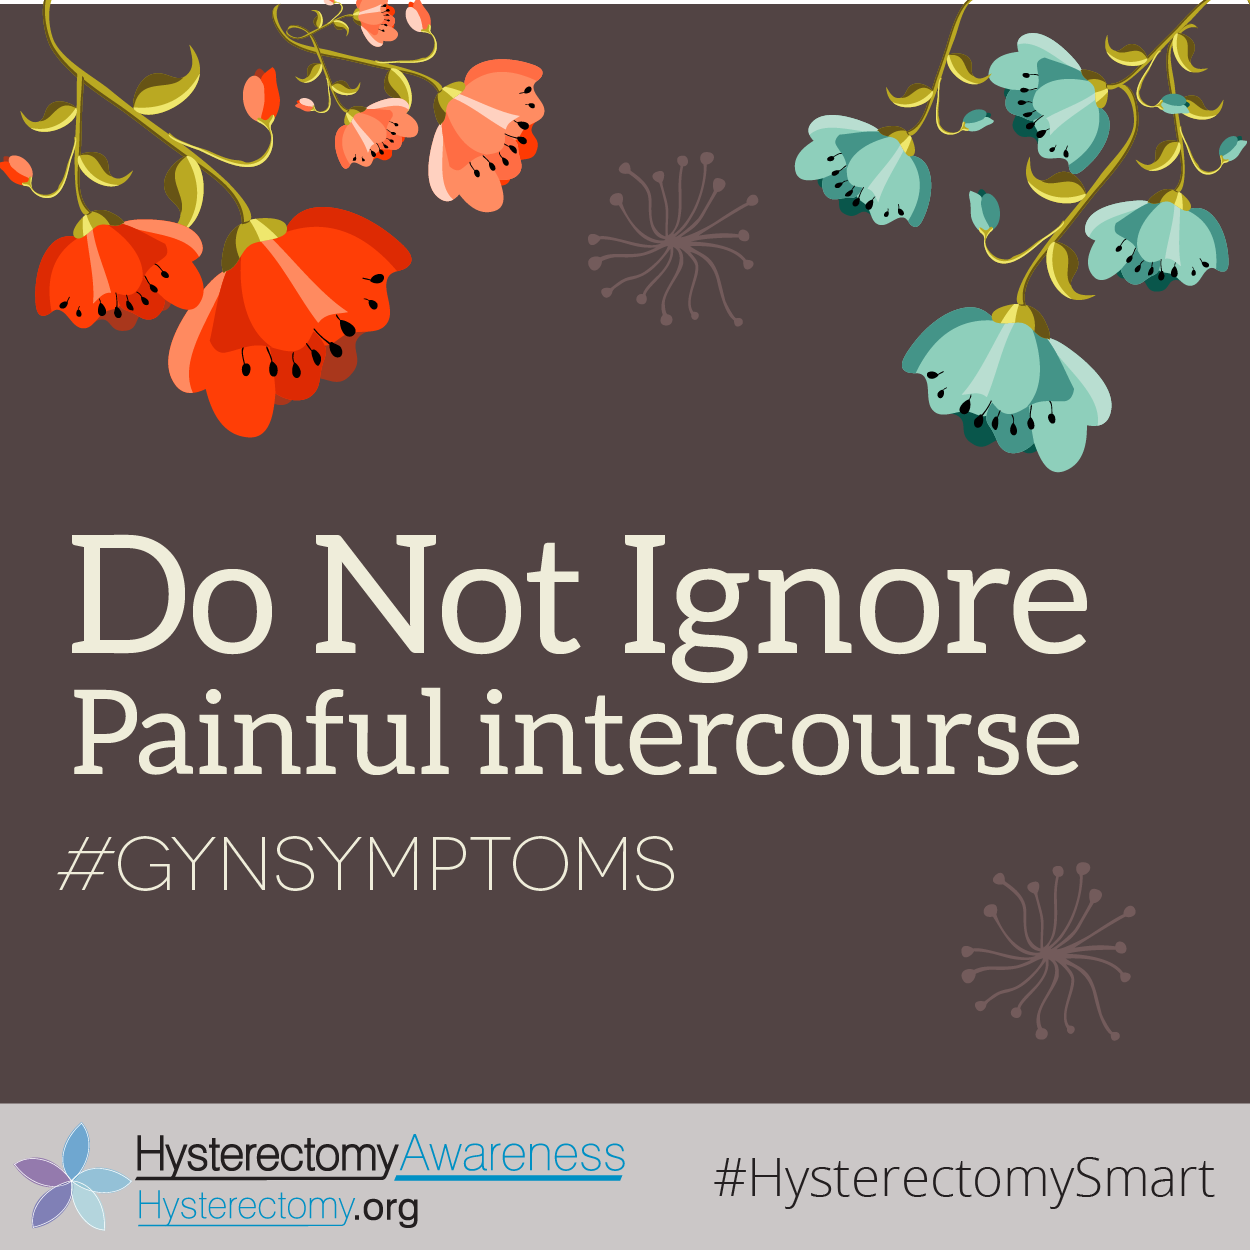 Do not ignore: Painful intercourse #GYNsymptoms #HysterectomySmart